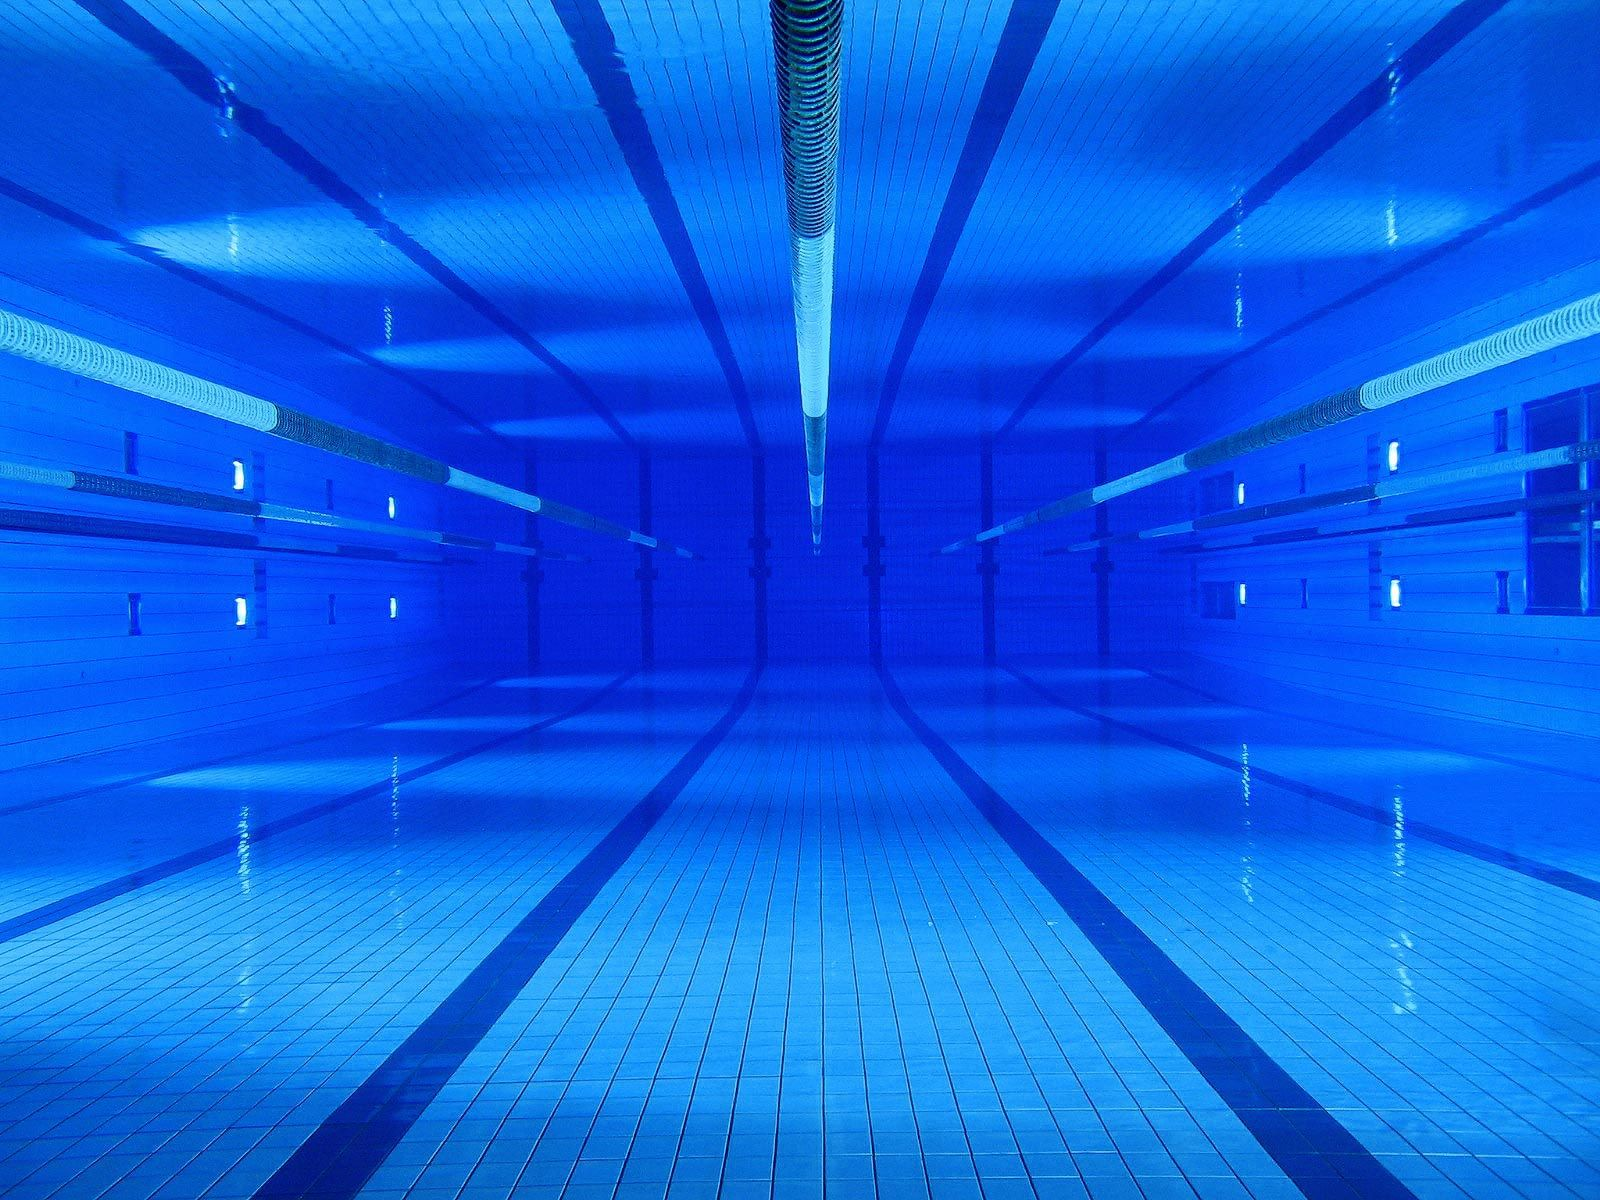 olympic swimming pool background style diving l in decorating - Olympic Swimming Pool 2014